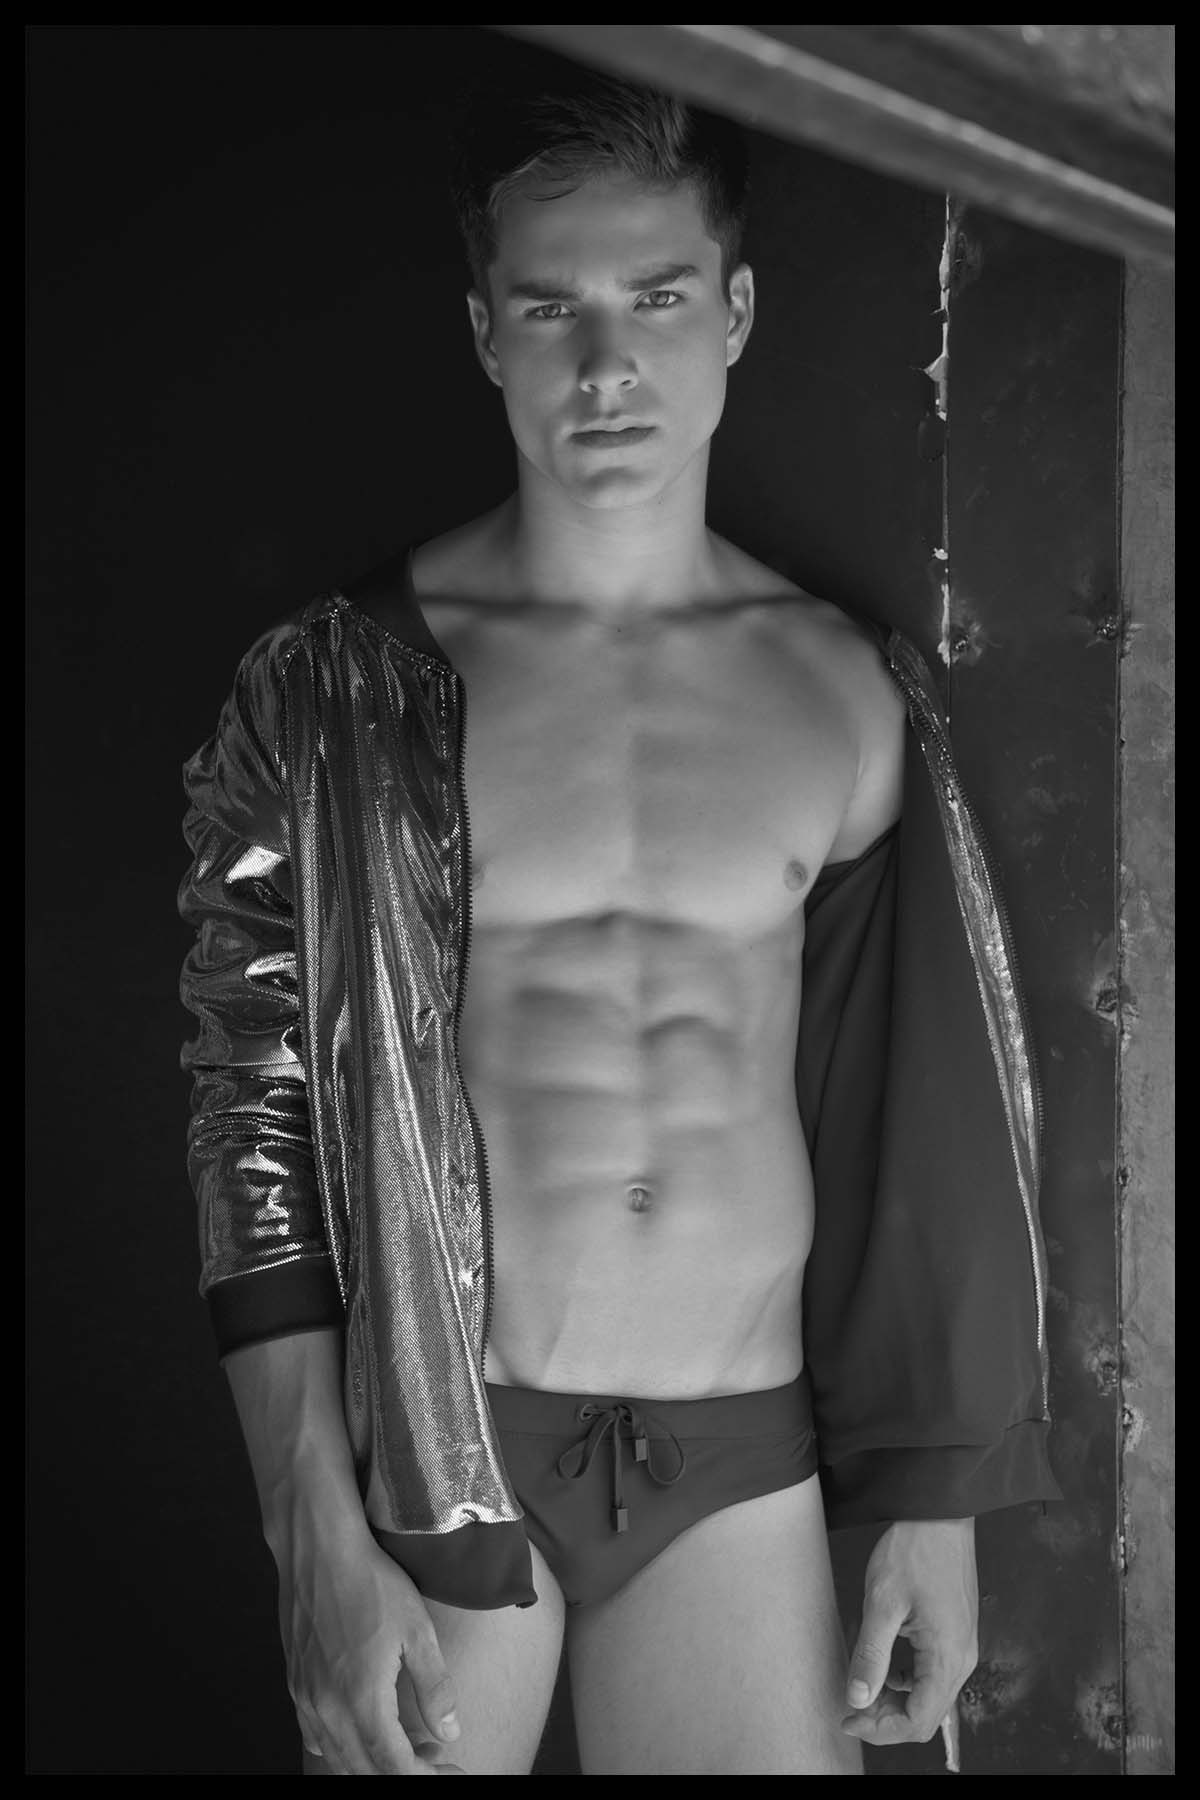 Pedro Maia by Filipe Galgani for Brazilian Male Model